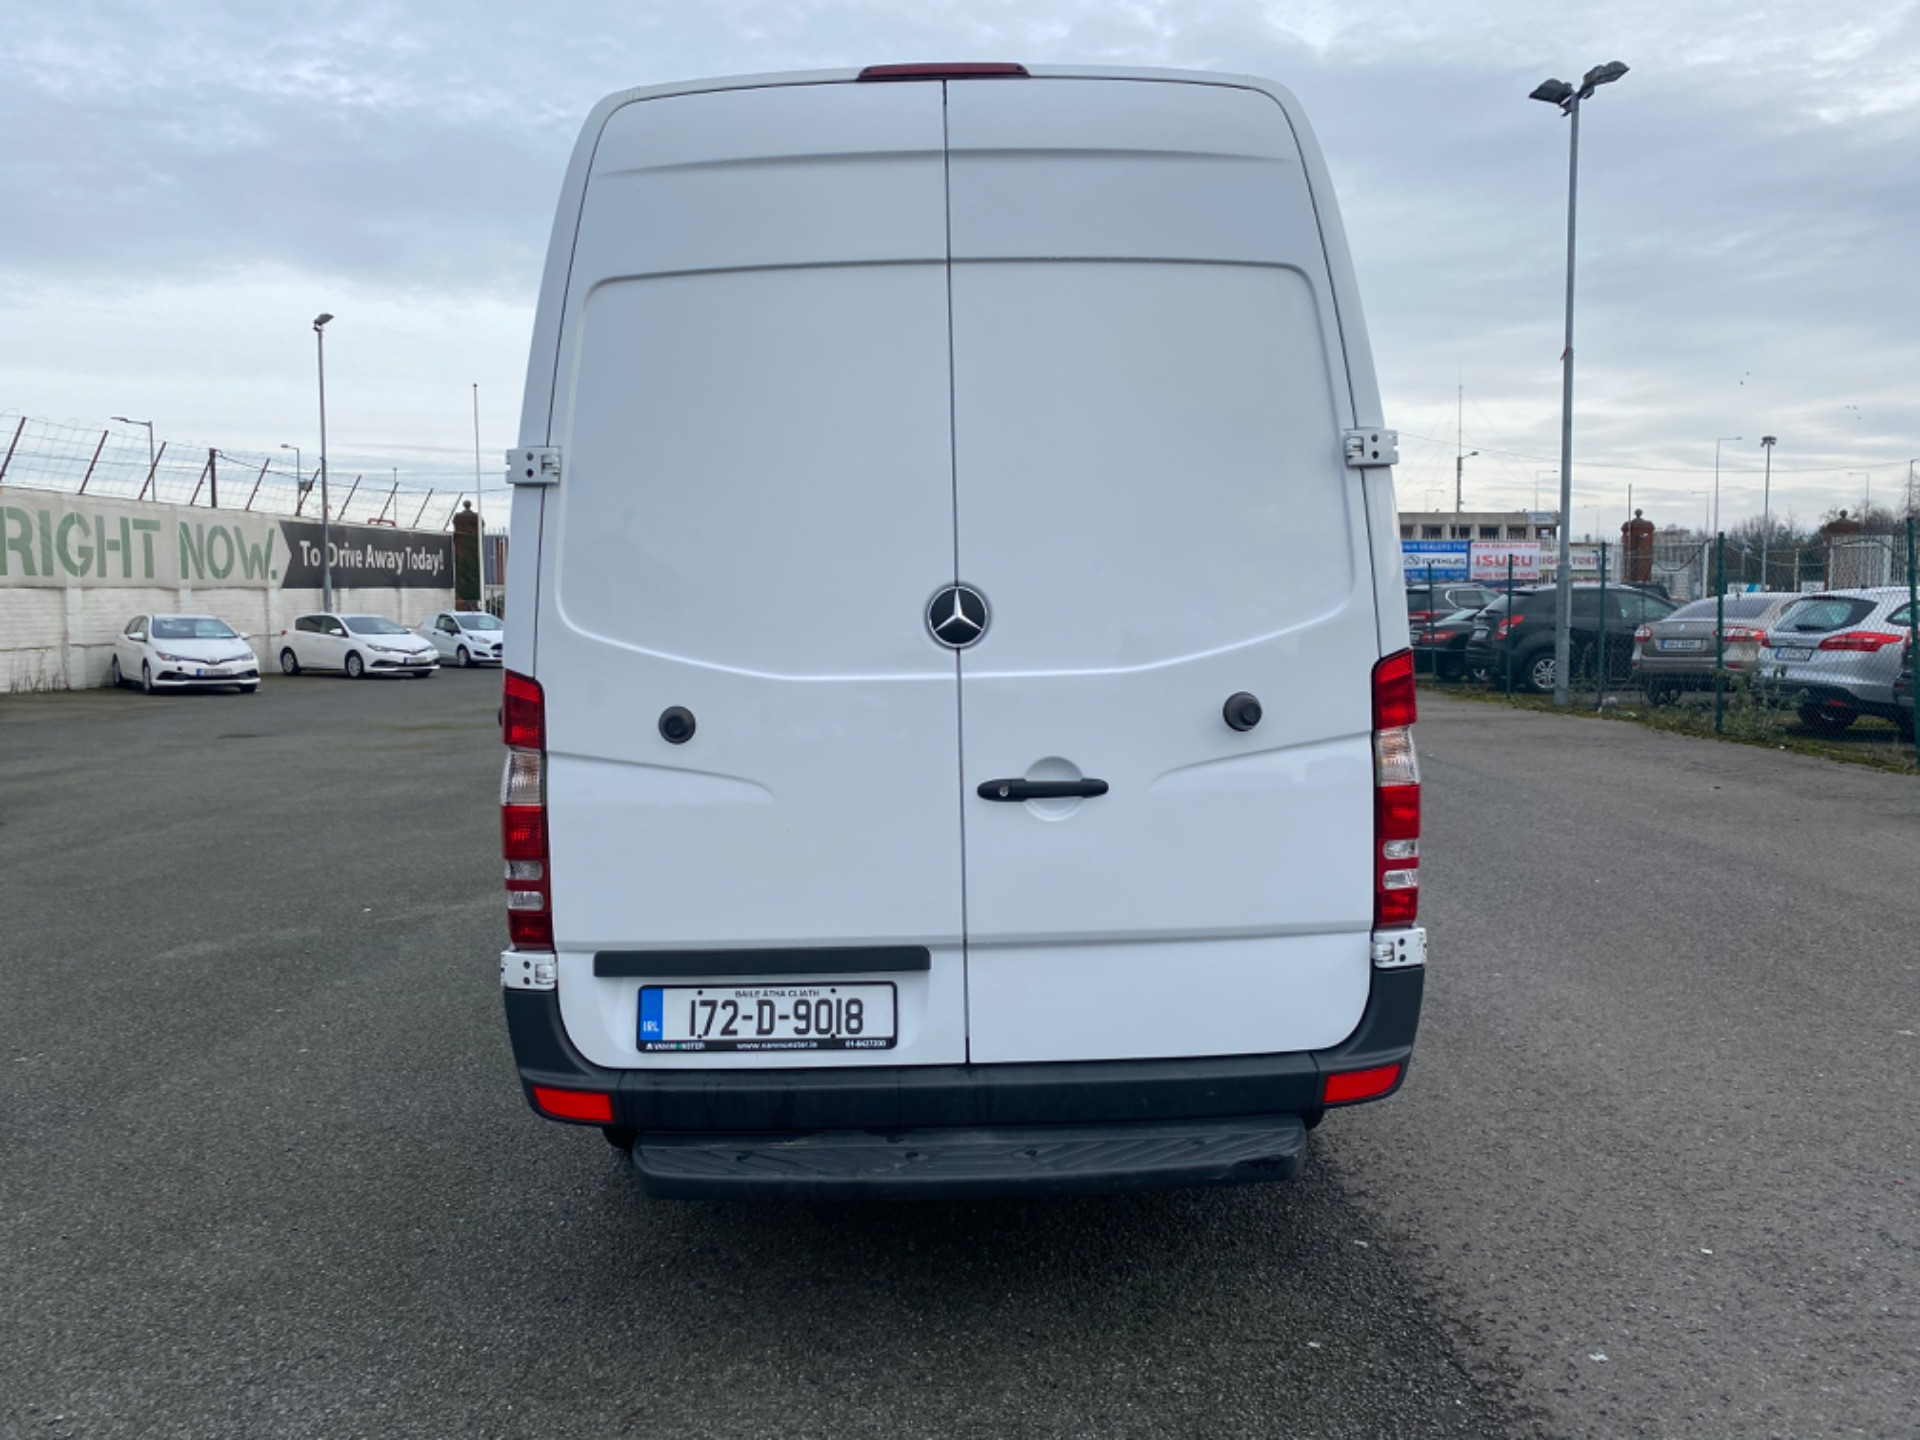 2017 Mercedes-Benz Sprinter 314/36 EU6 6DR (172D9018) Thumbnail 6